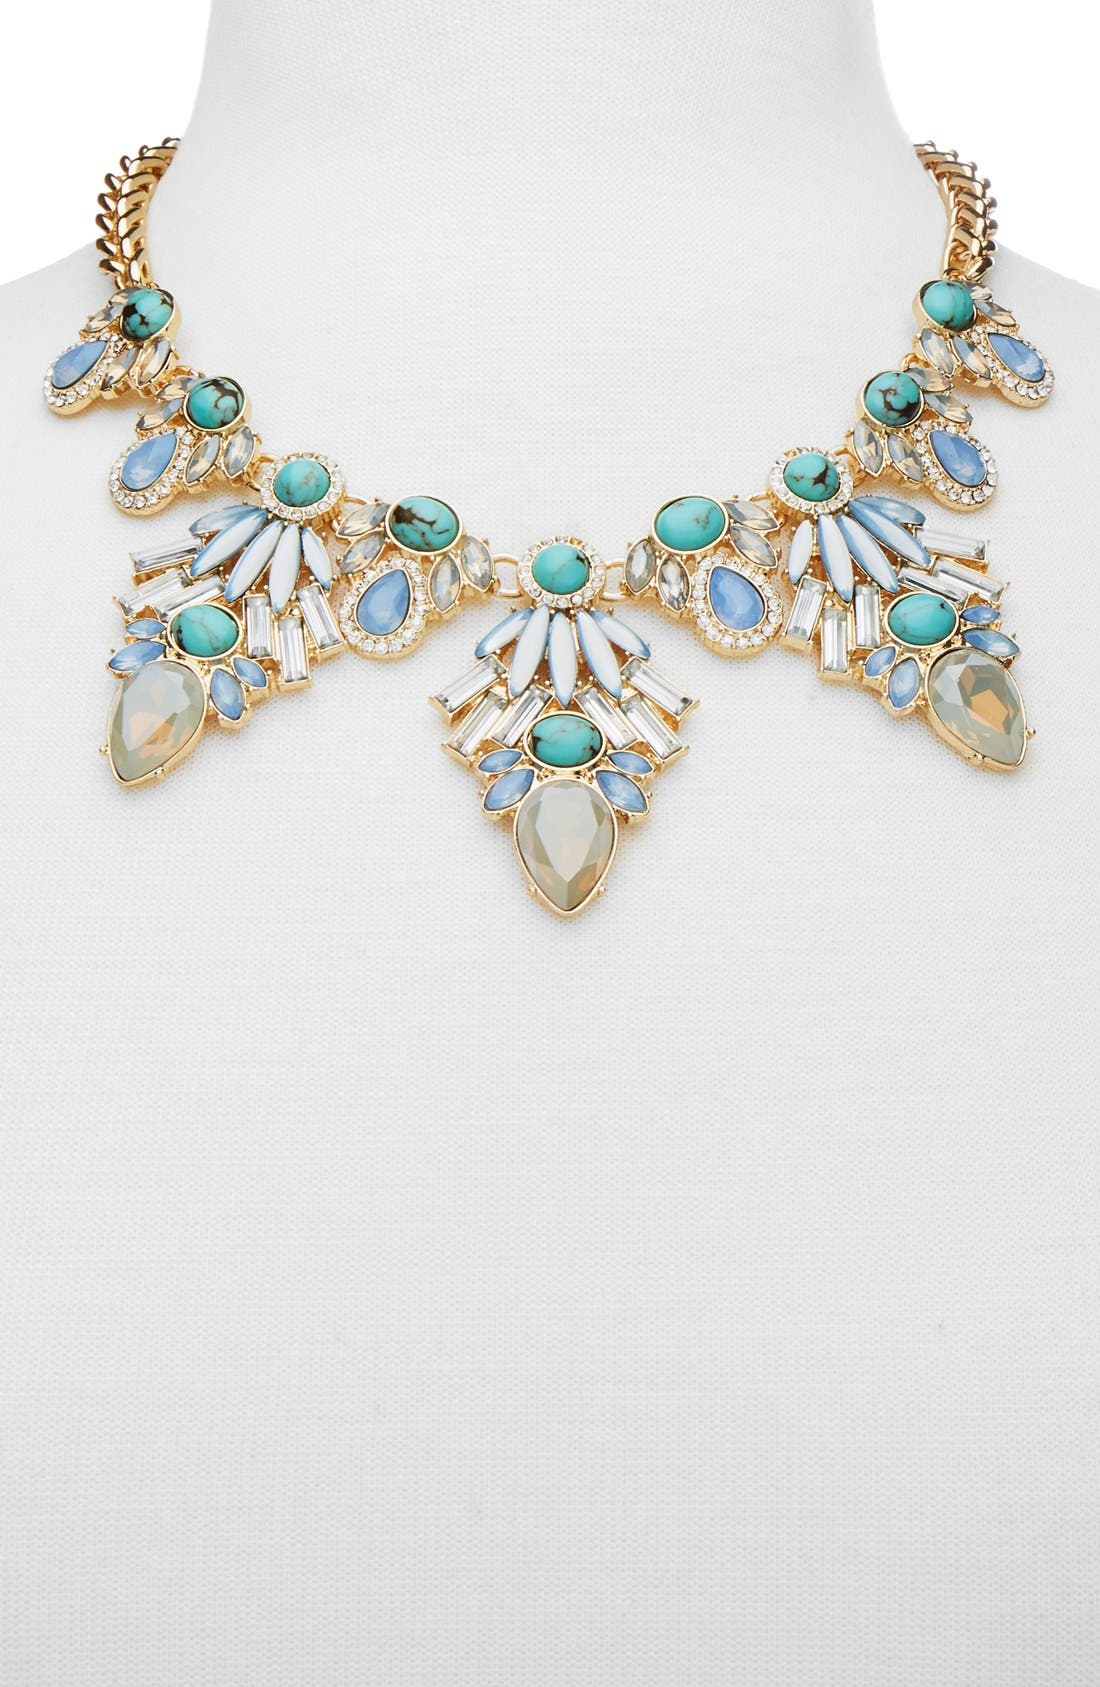 'Baltic' Collar Necklace,                             Alternate thumbnail 2, color,                             Gold/ Turquoise